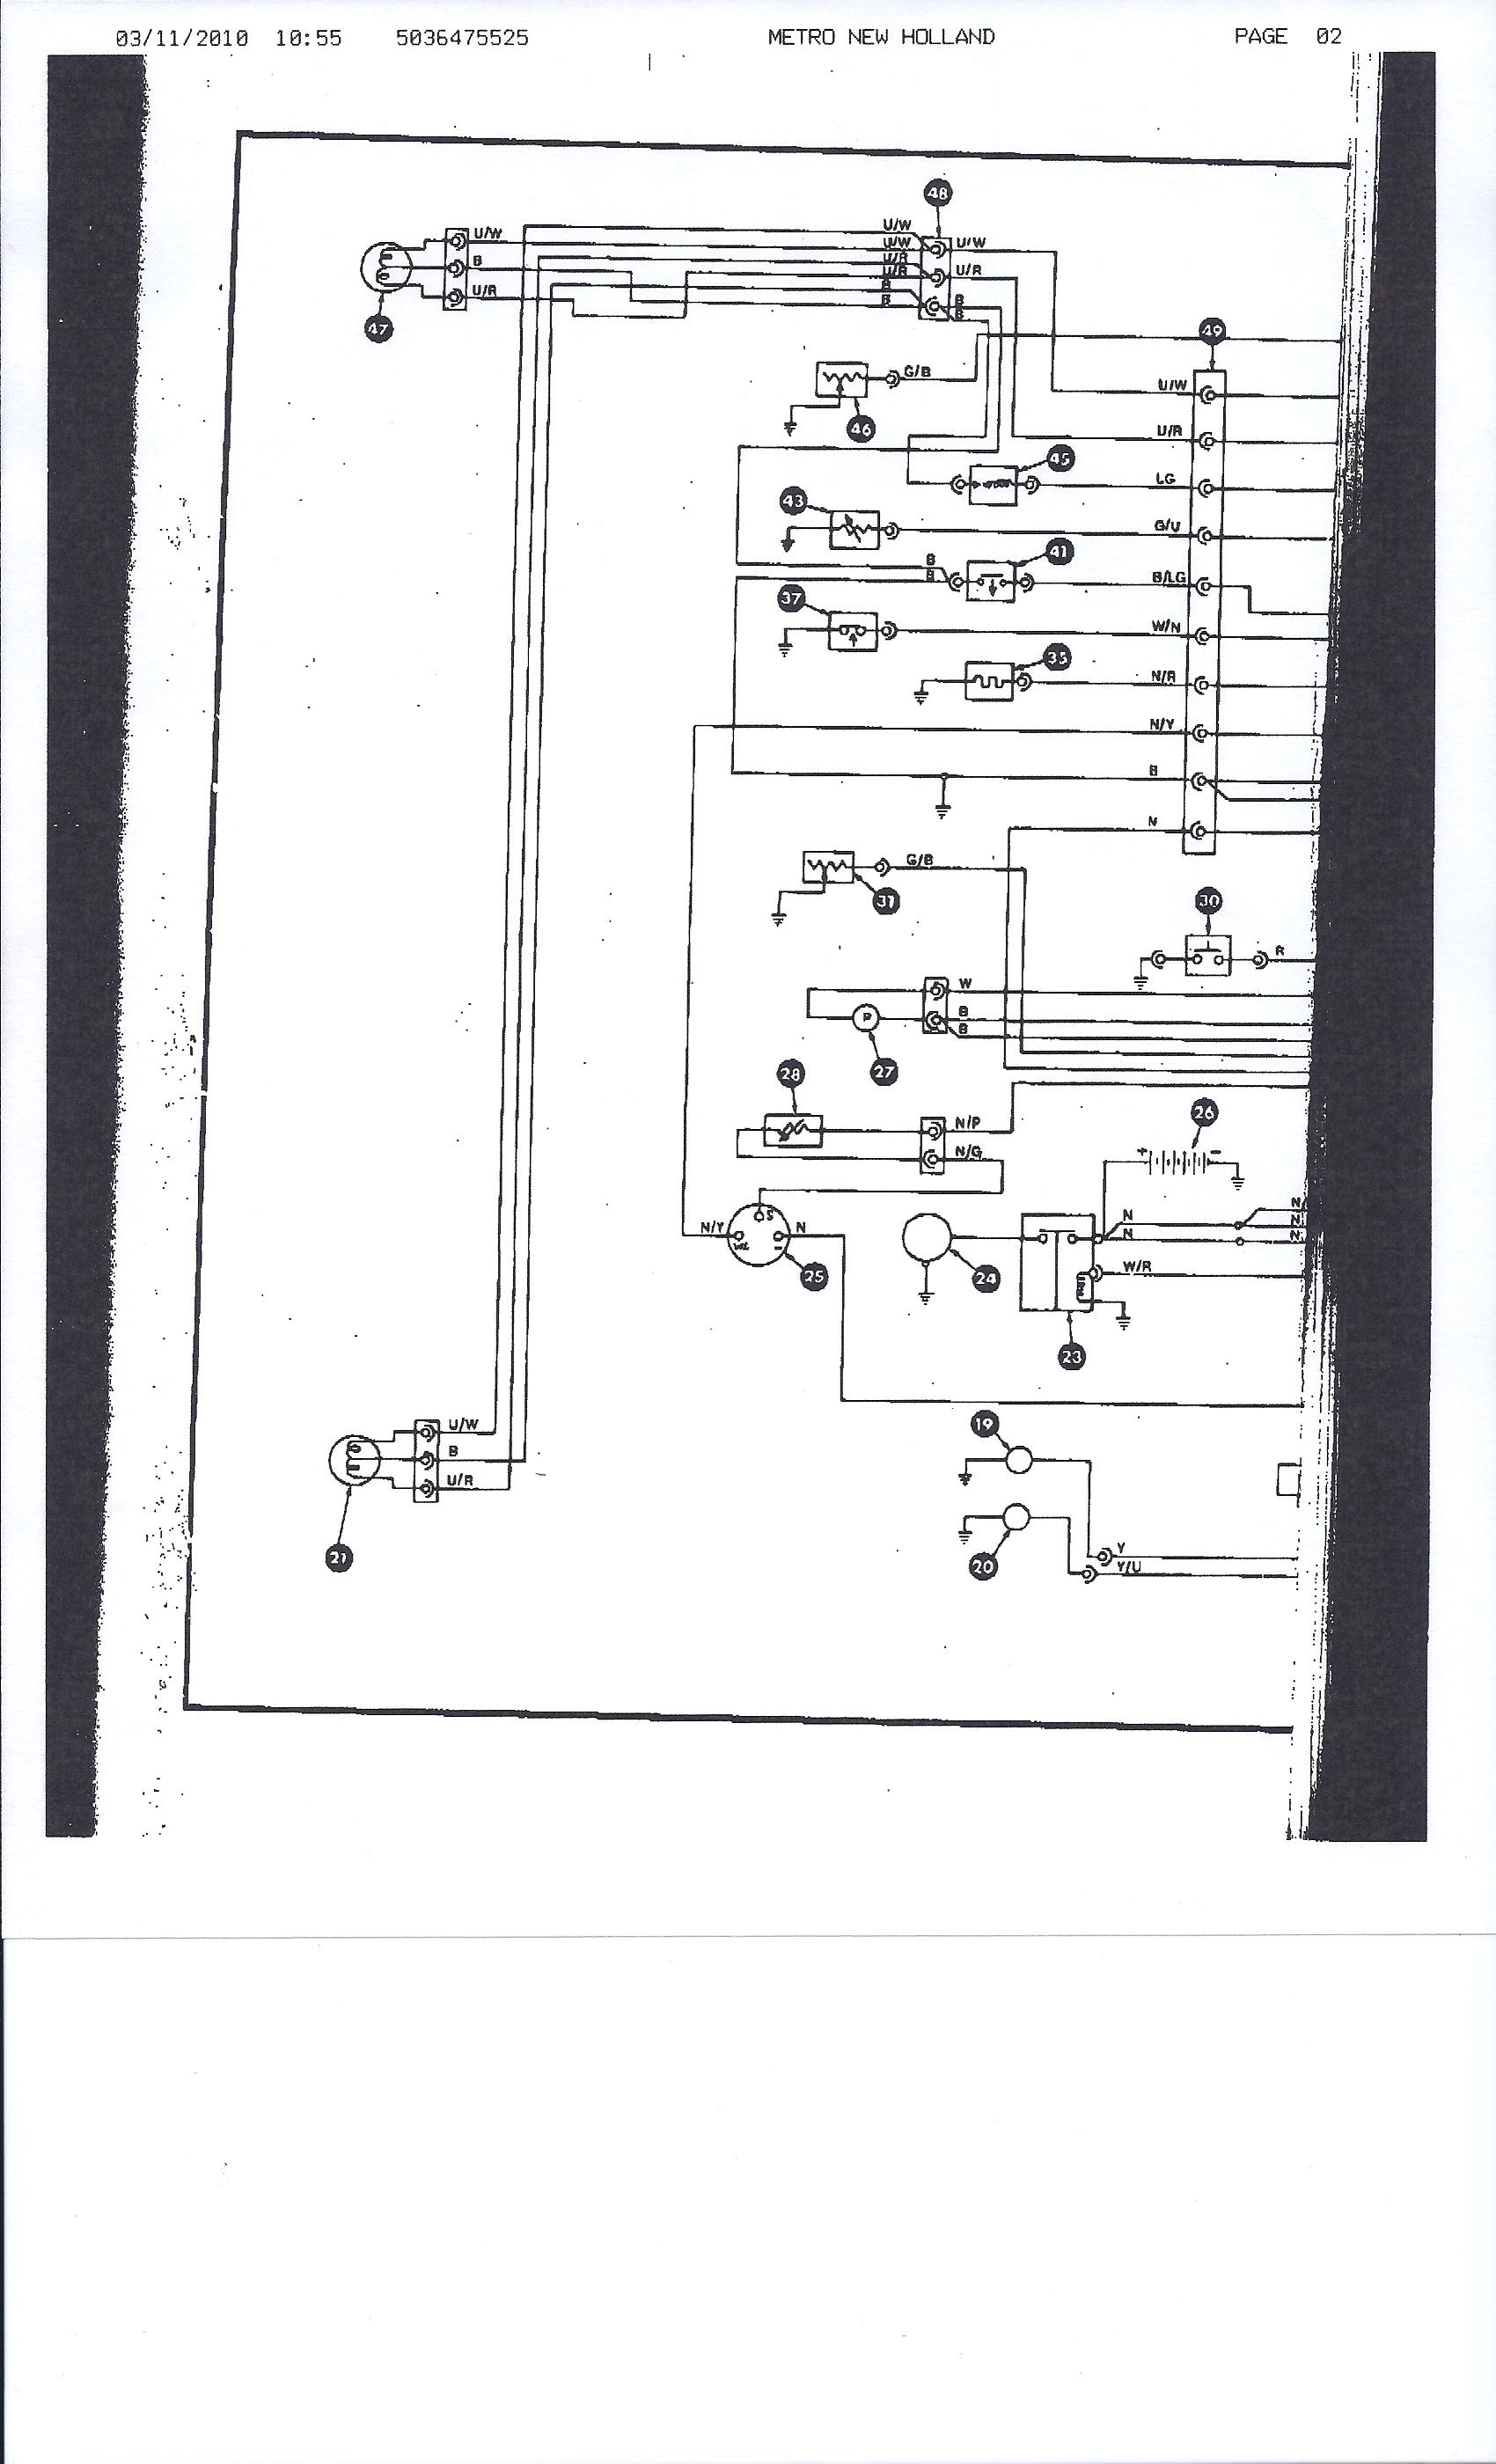 New Holland Wiring Diagram